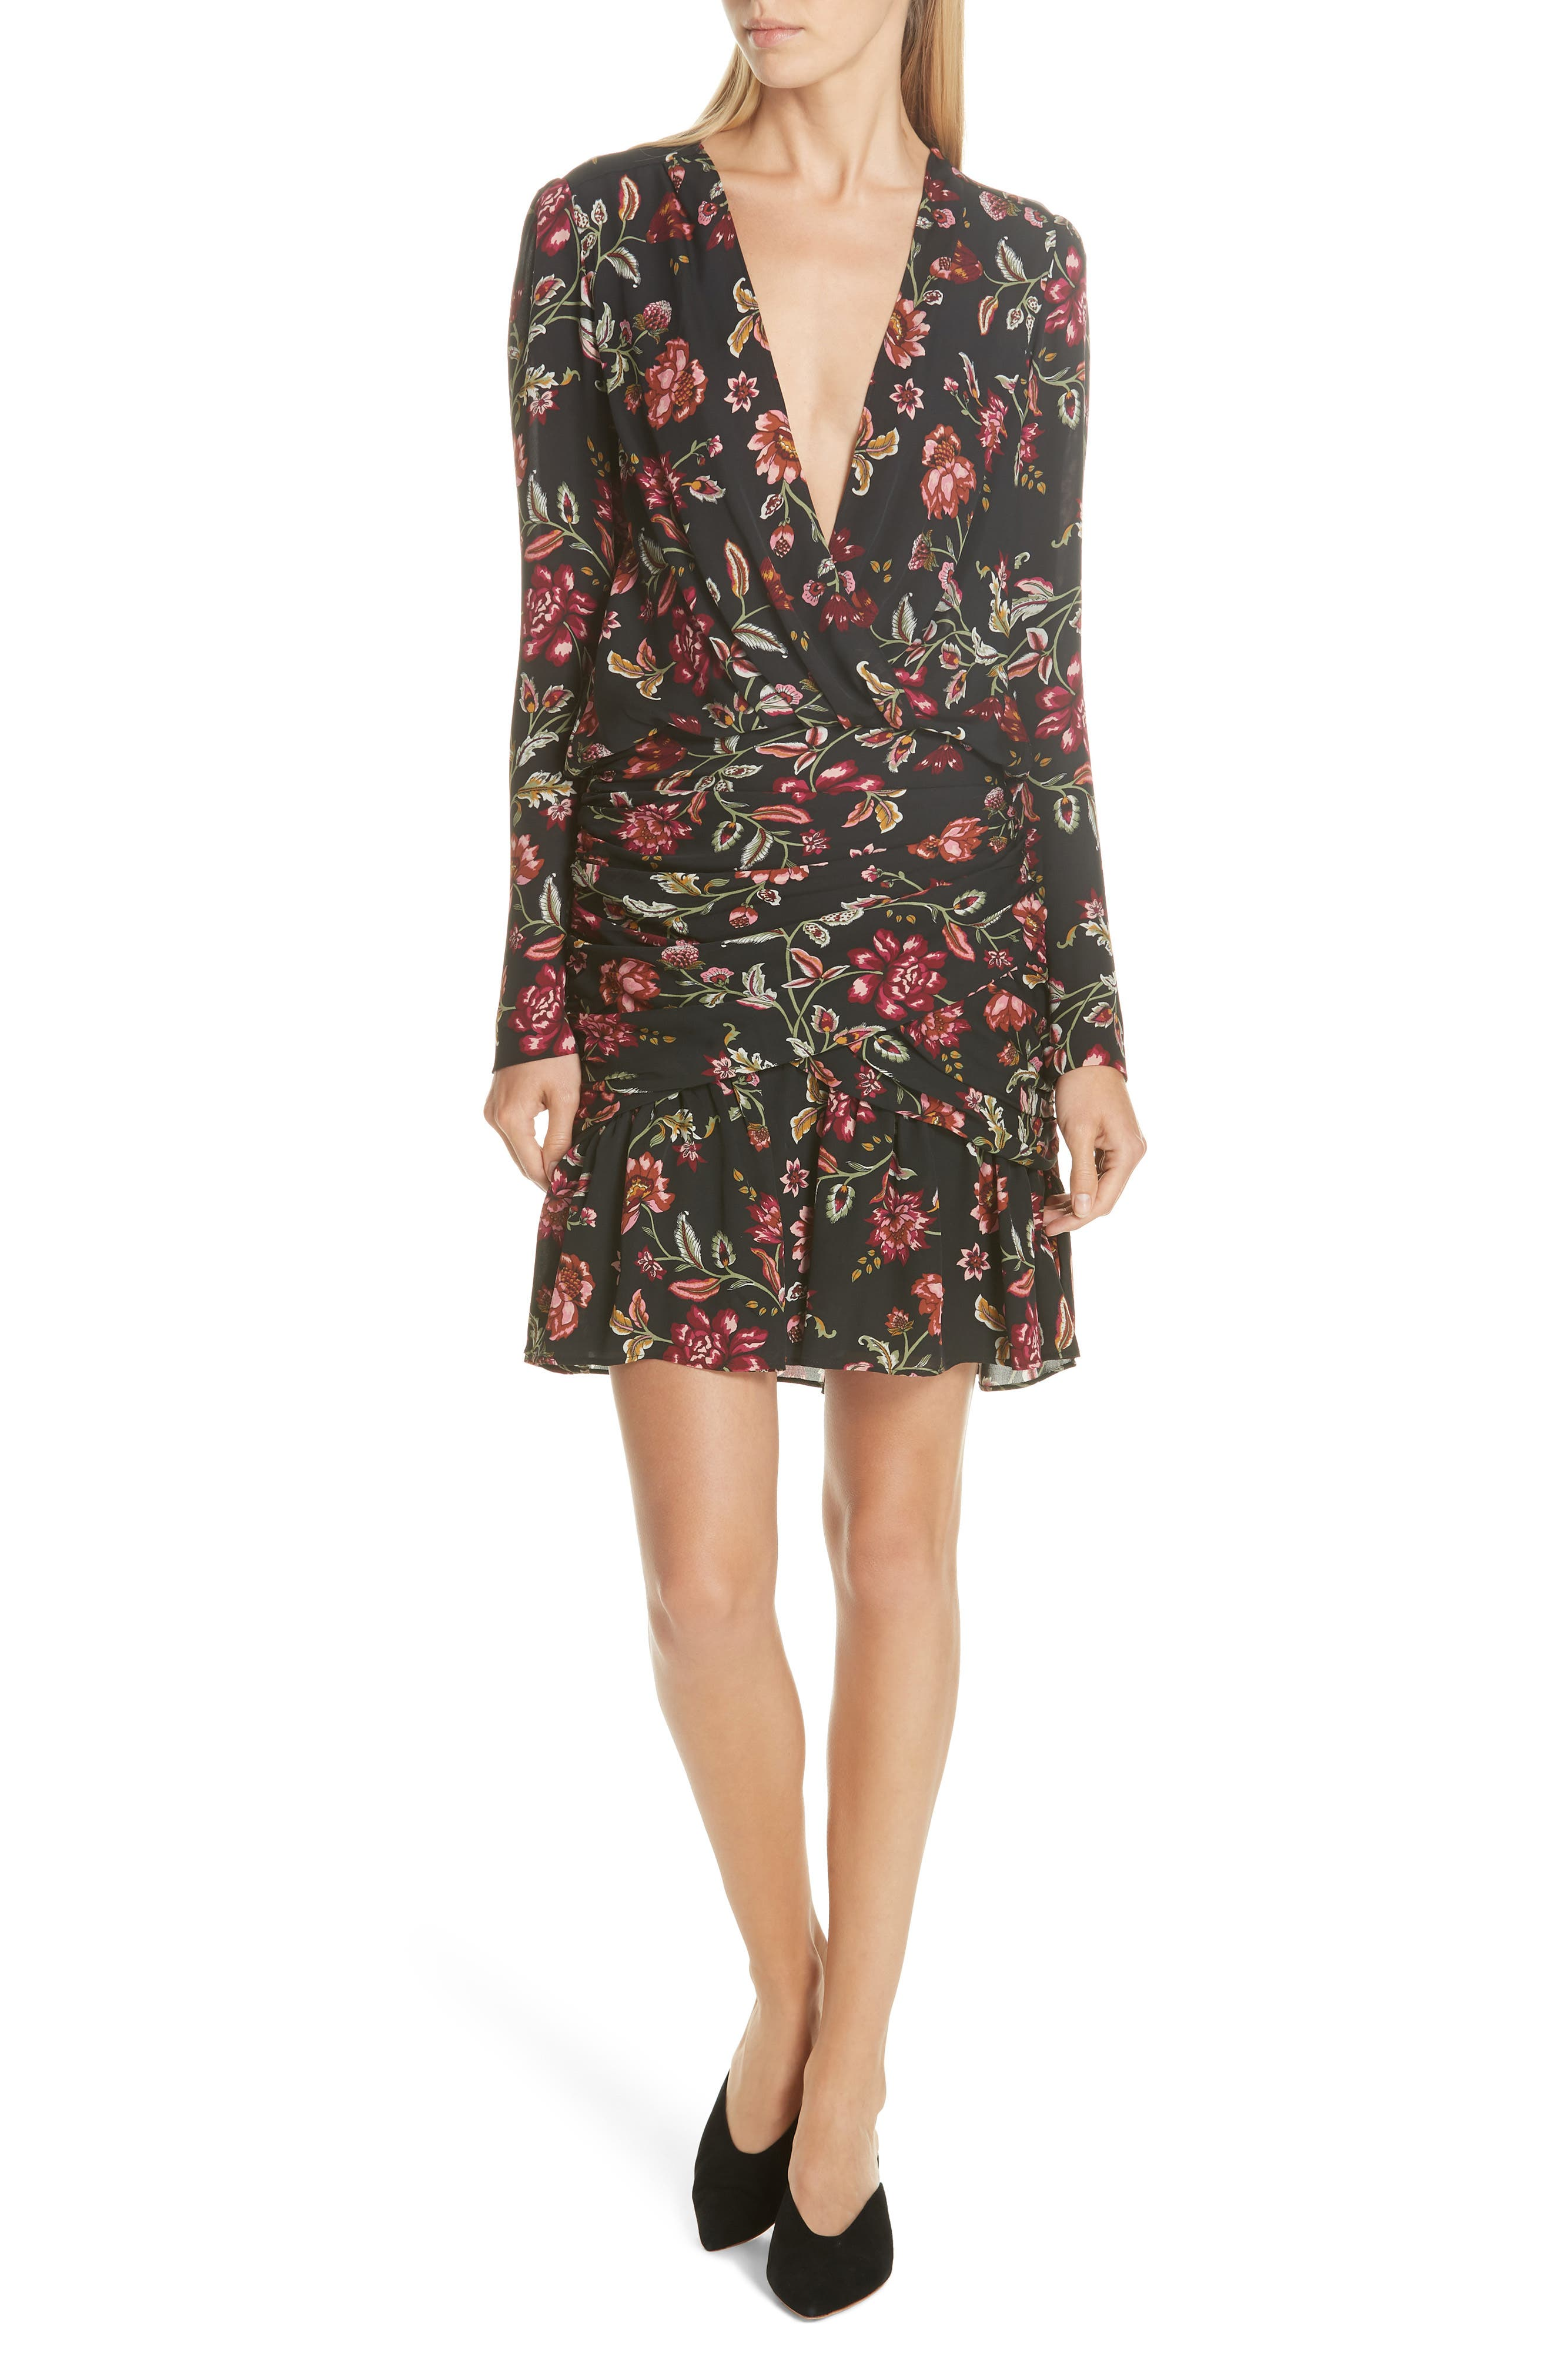 A.L.C Haven Shirred Floral Silk Cocktail Dress in Black/ Terracotta